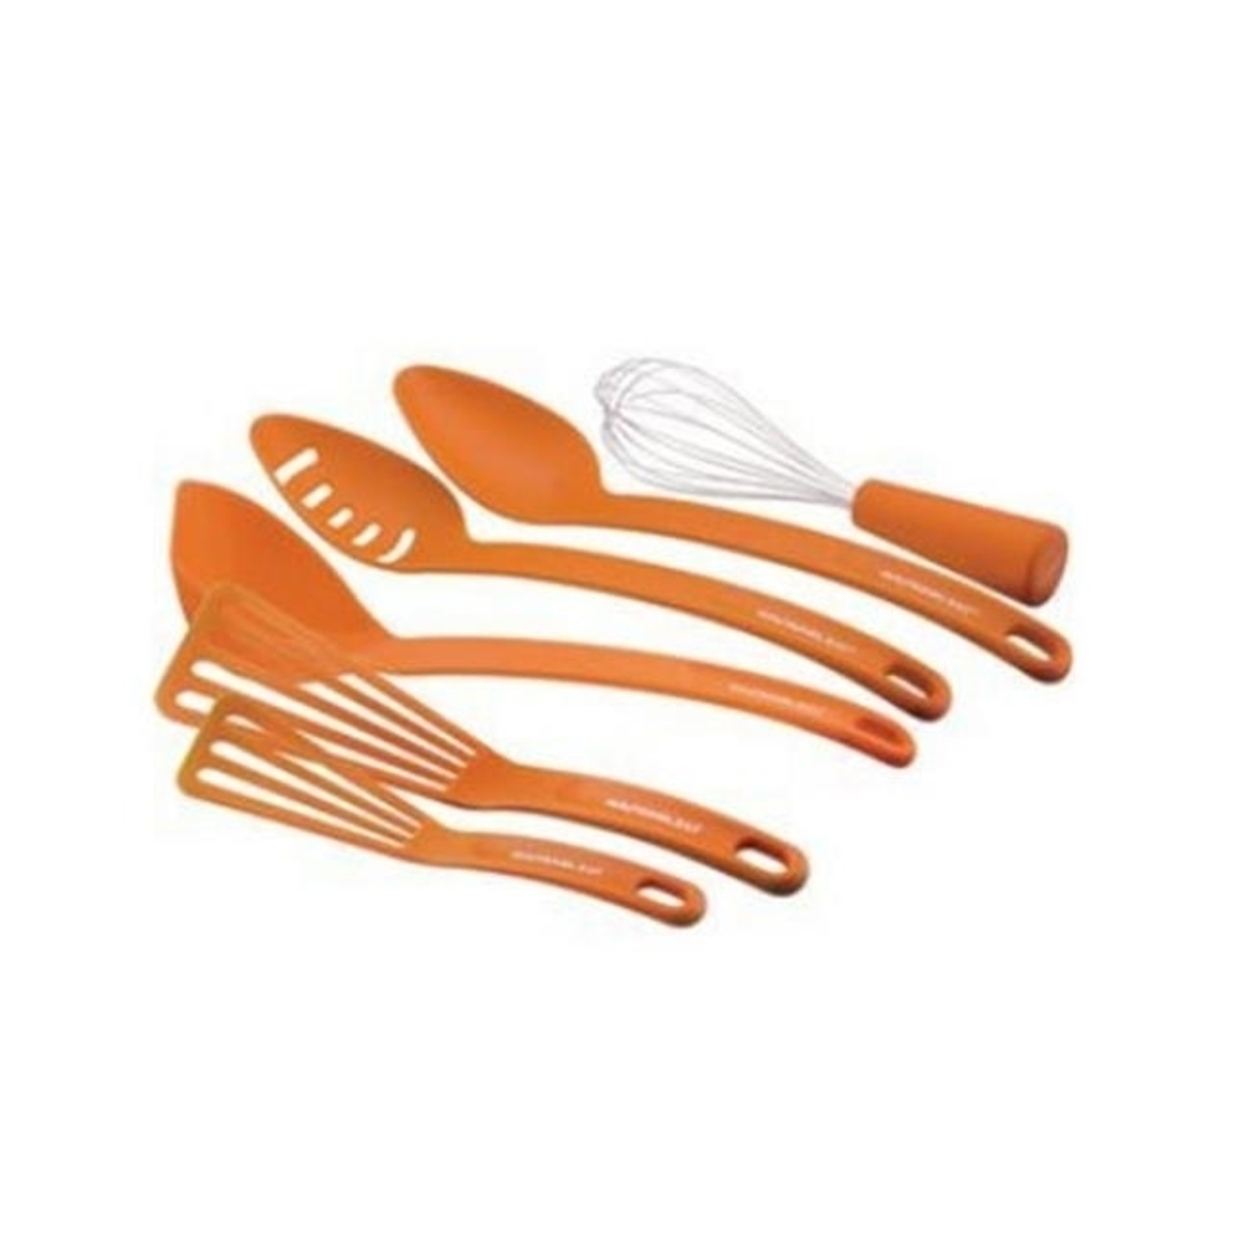 Rachael Ray 55737 Tools 6-Piece Tool Set Orange 596e27322a00e45920203044